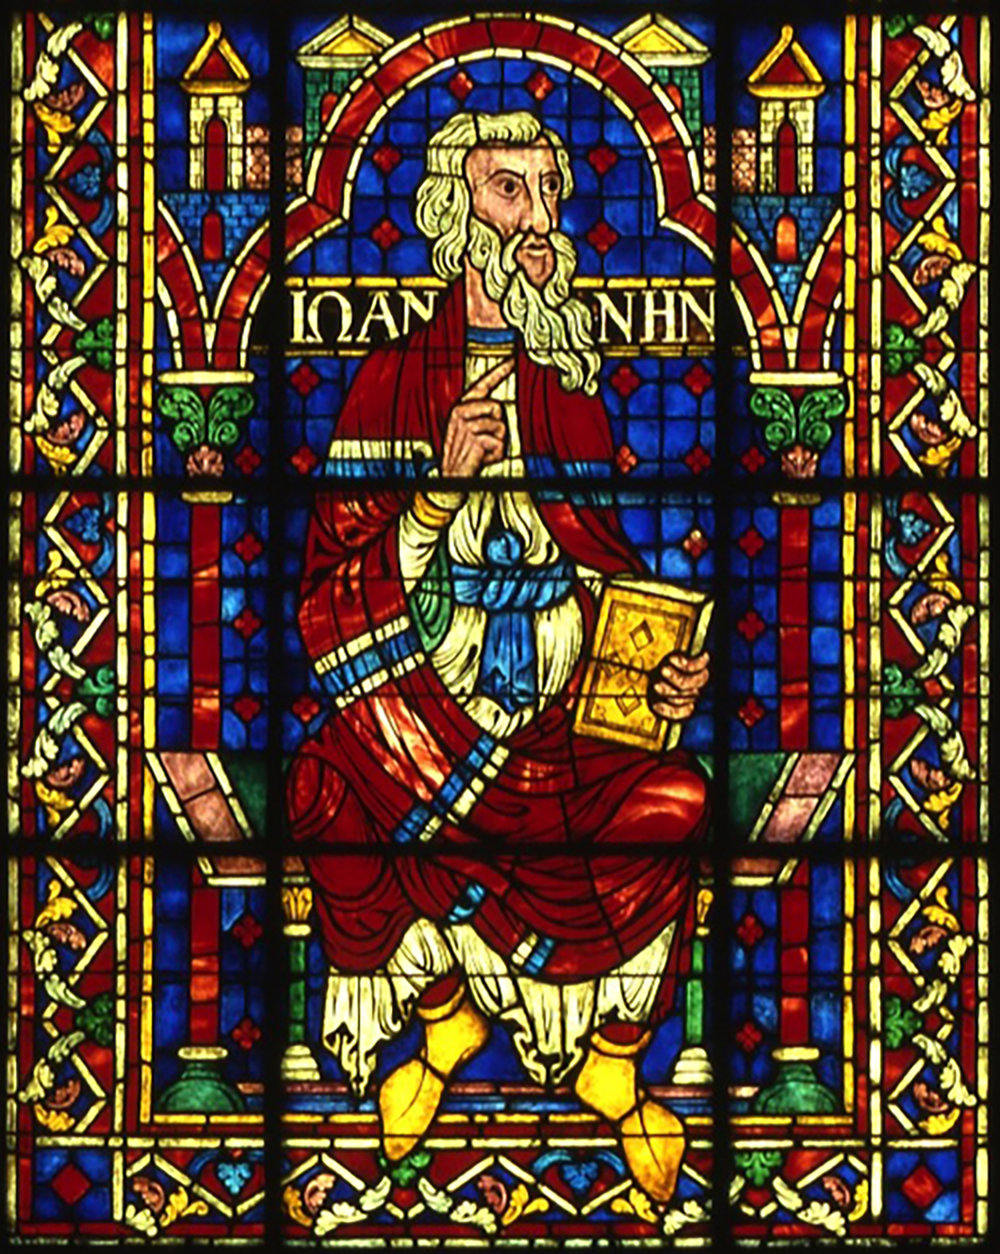 Figure 5: John beneath the Angel with Censer window in Glencairn's Great Hall.